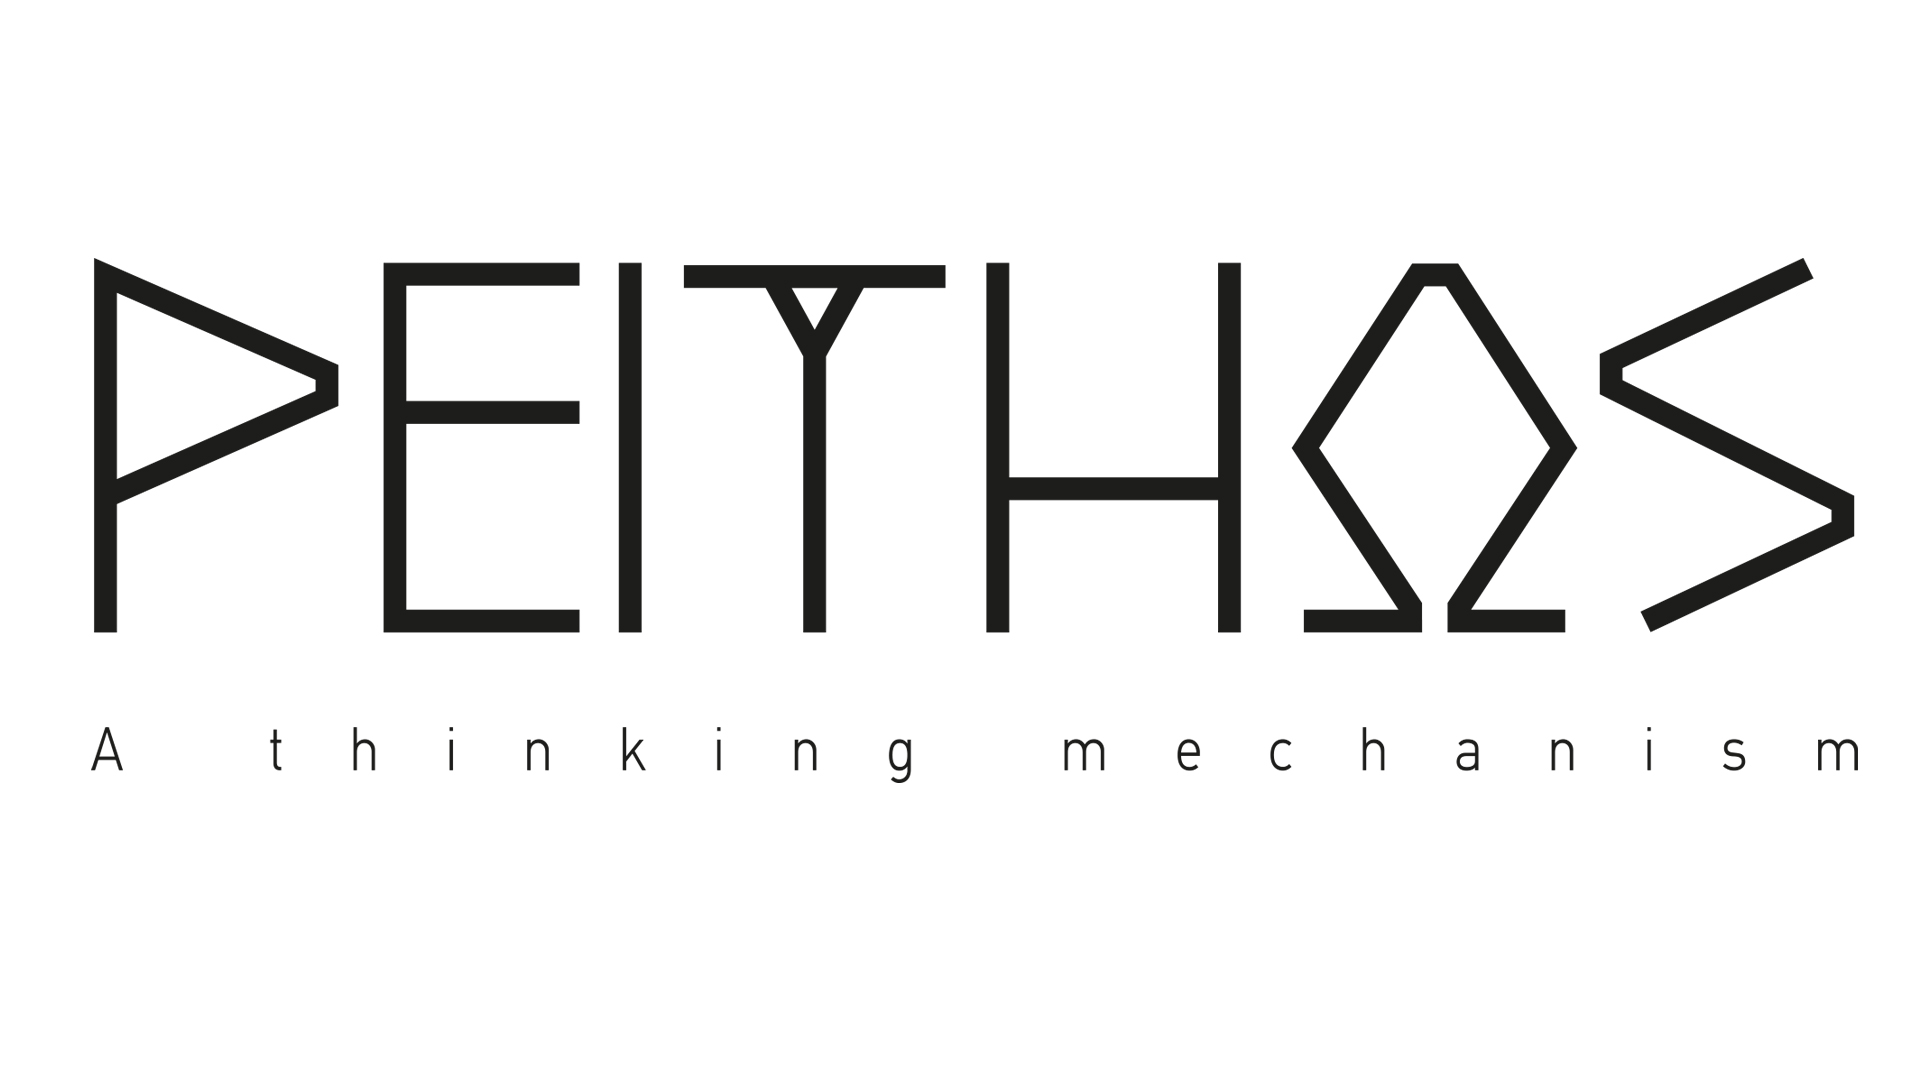 LOGISTICS WAY- PEITHΩS LOGO